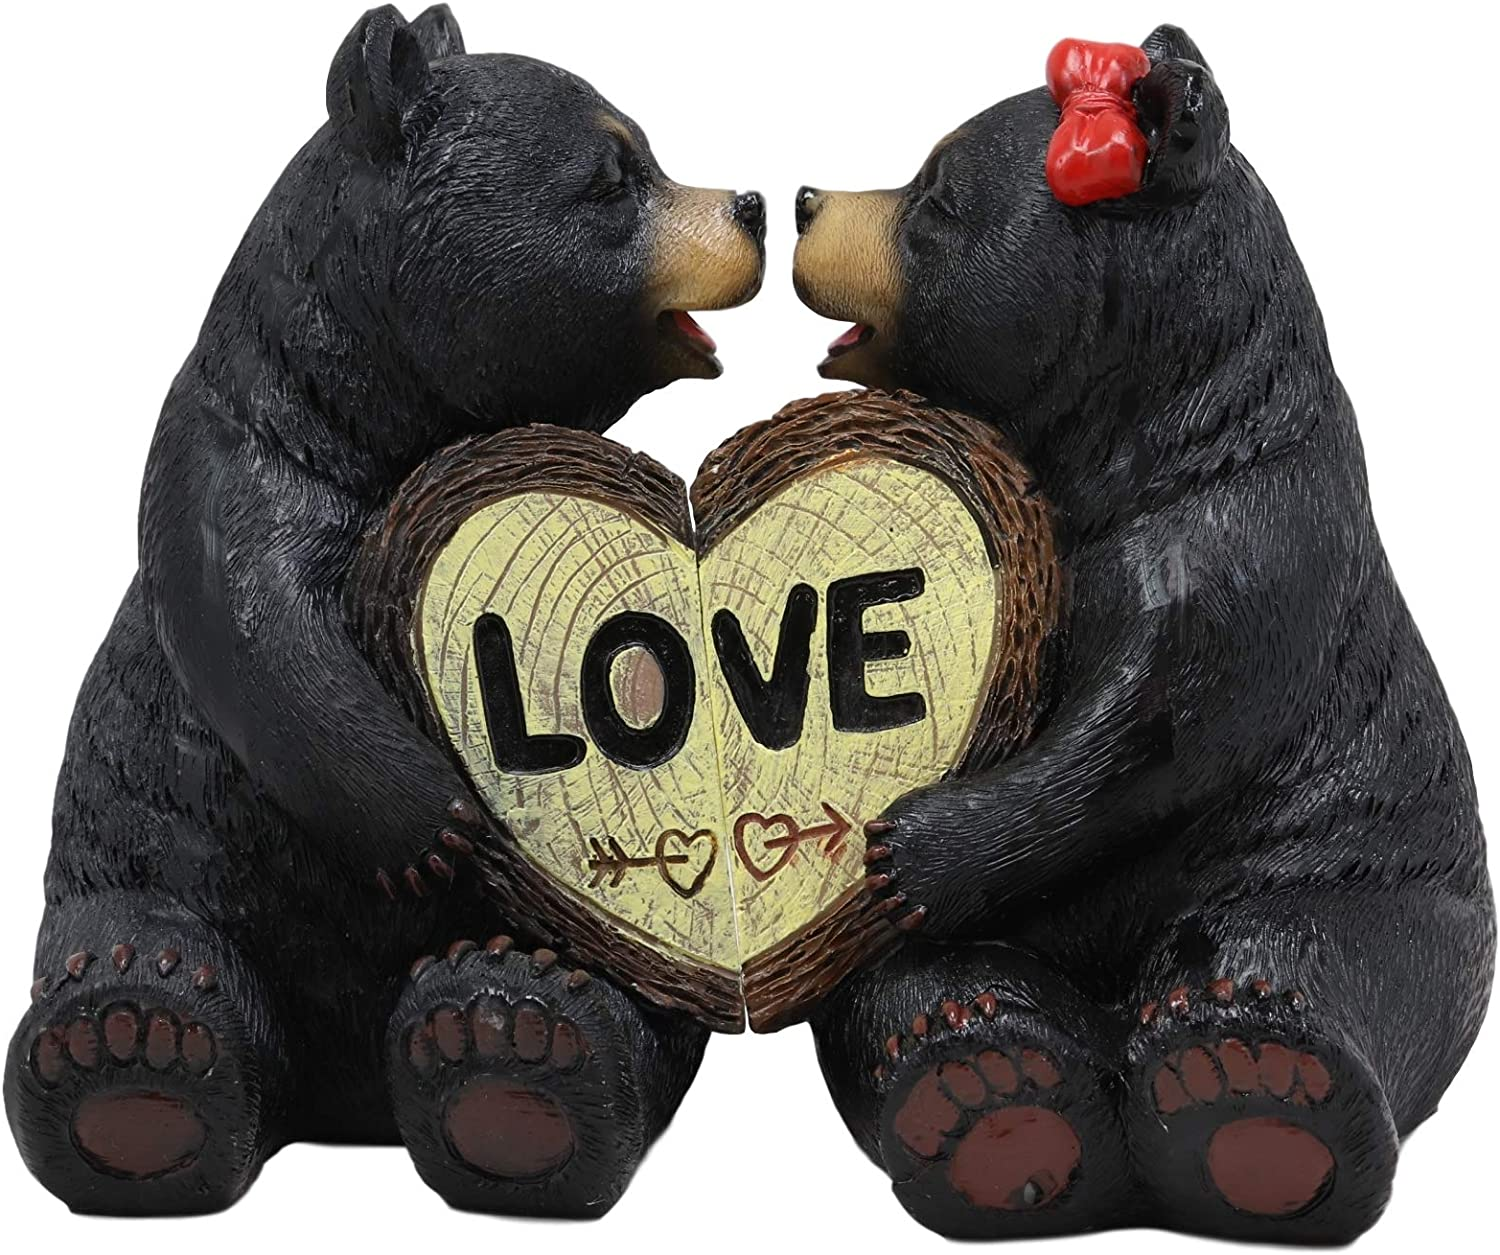 """Ebros Whimsical Love is in The Air Black Bear Couple Kissing and Holding Hands Figurines 2 Piece Parts 5"""" Tall Rustic Bears Valentine Lovers Decorative Figurine for Rustic Cabin Lodge Country Home"""